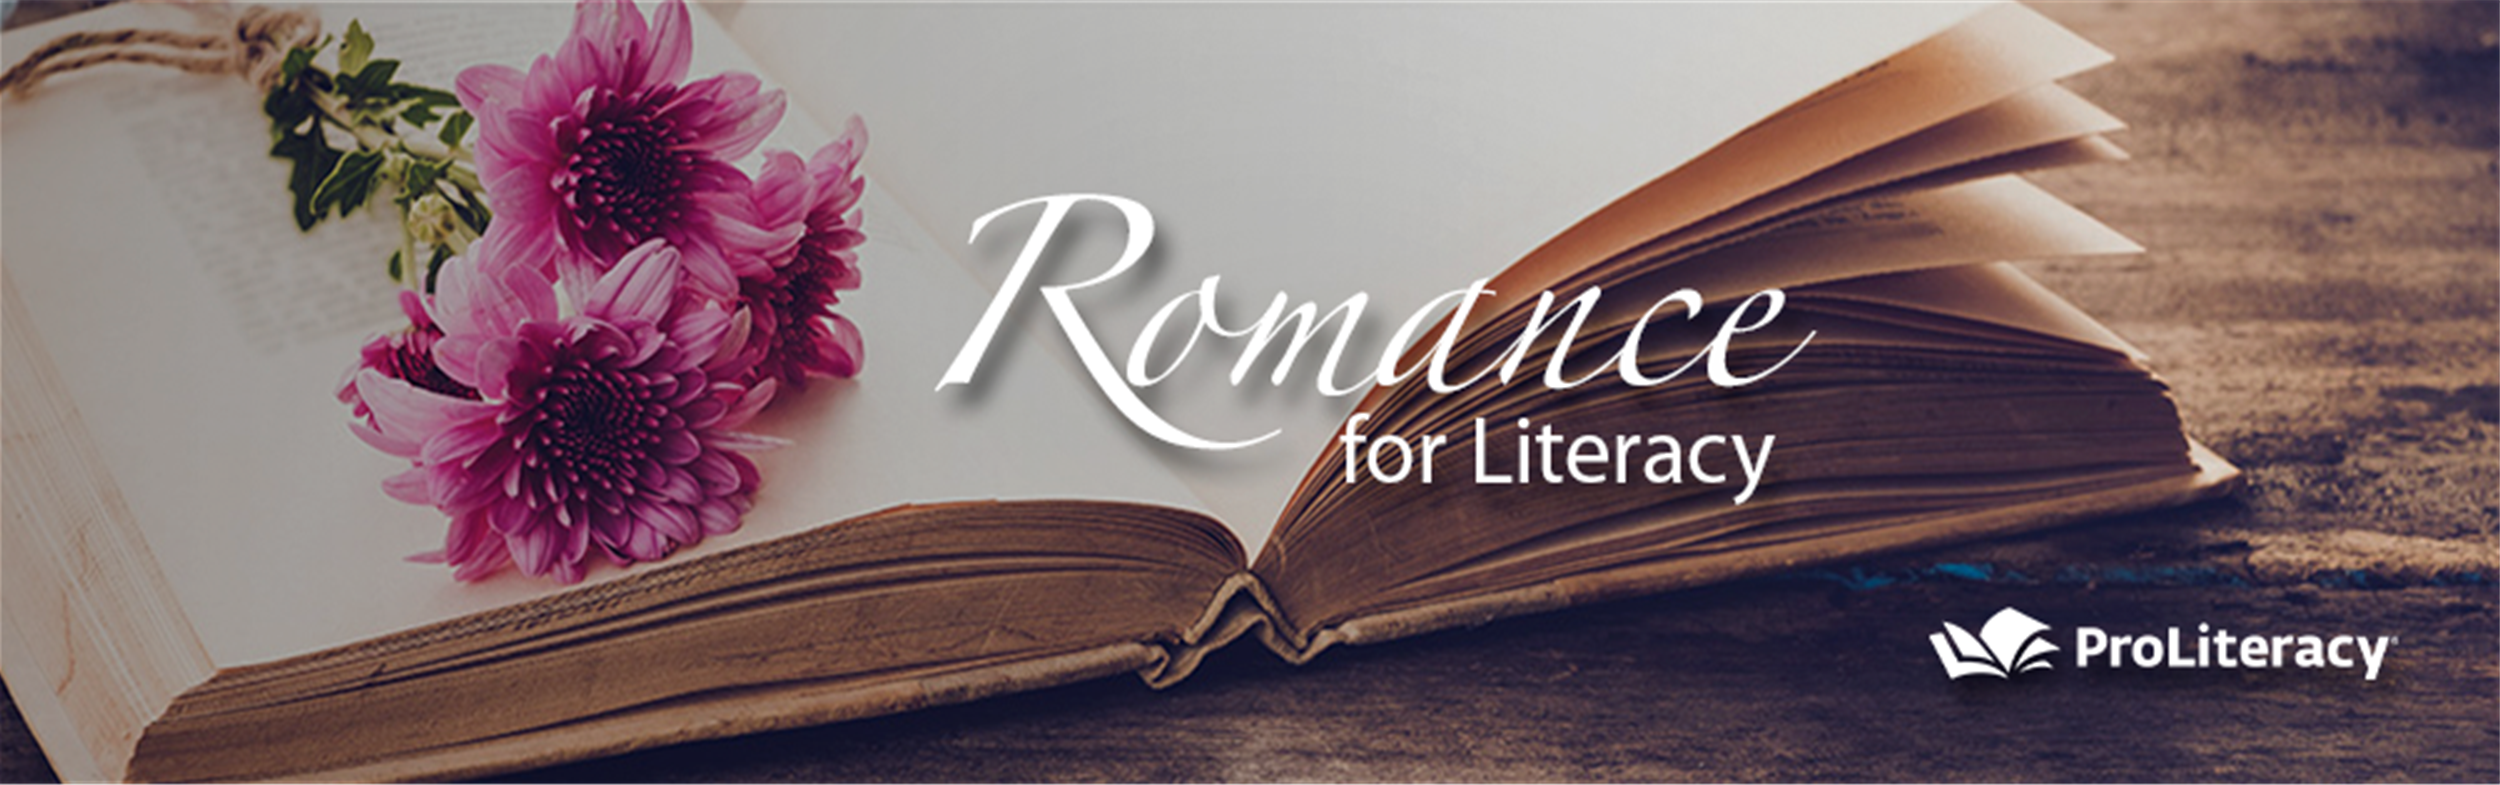 2020-02_Romance_web_pg_banner_1004x315_(2).png